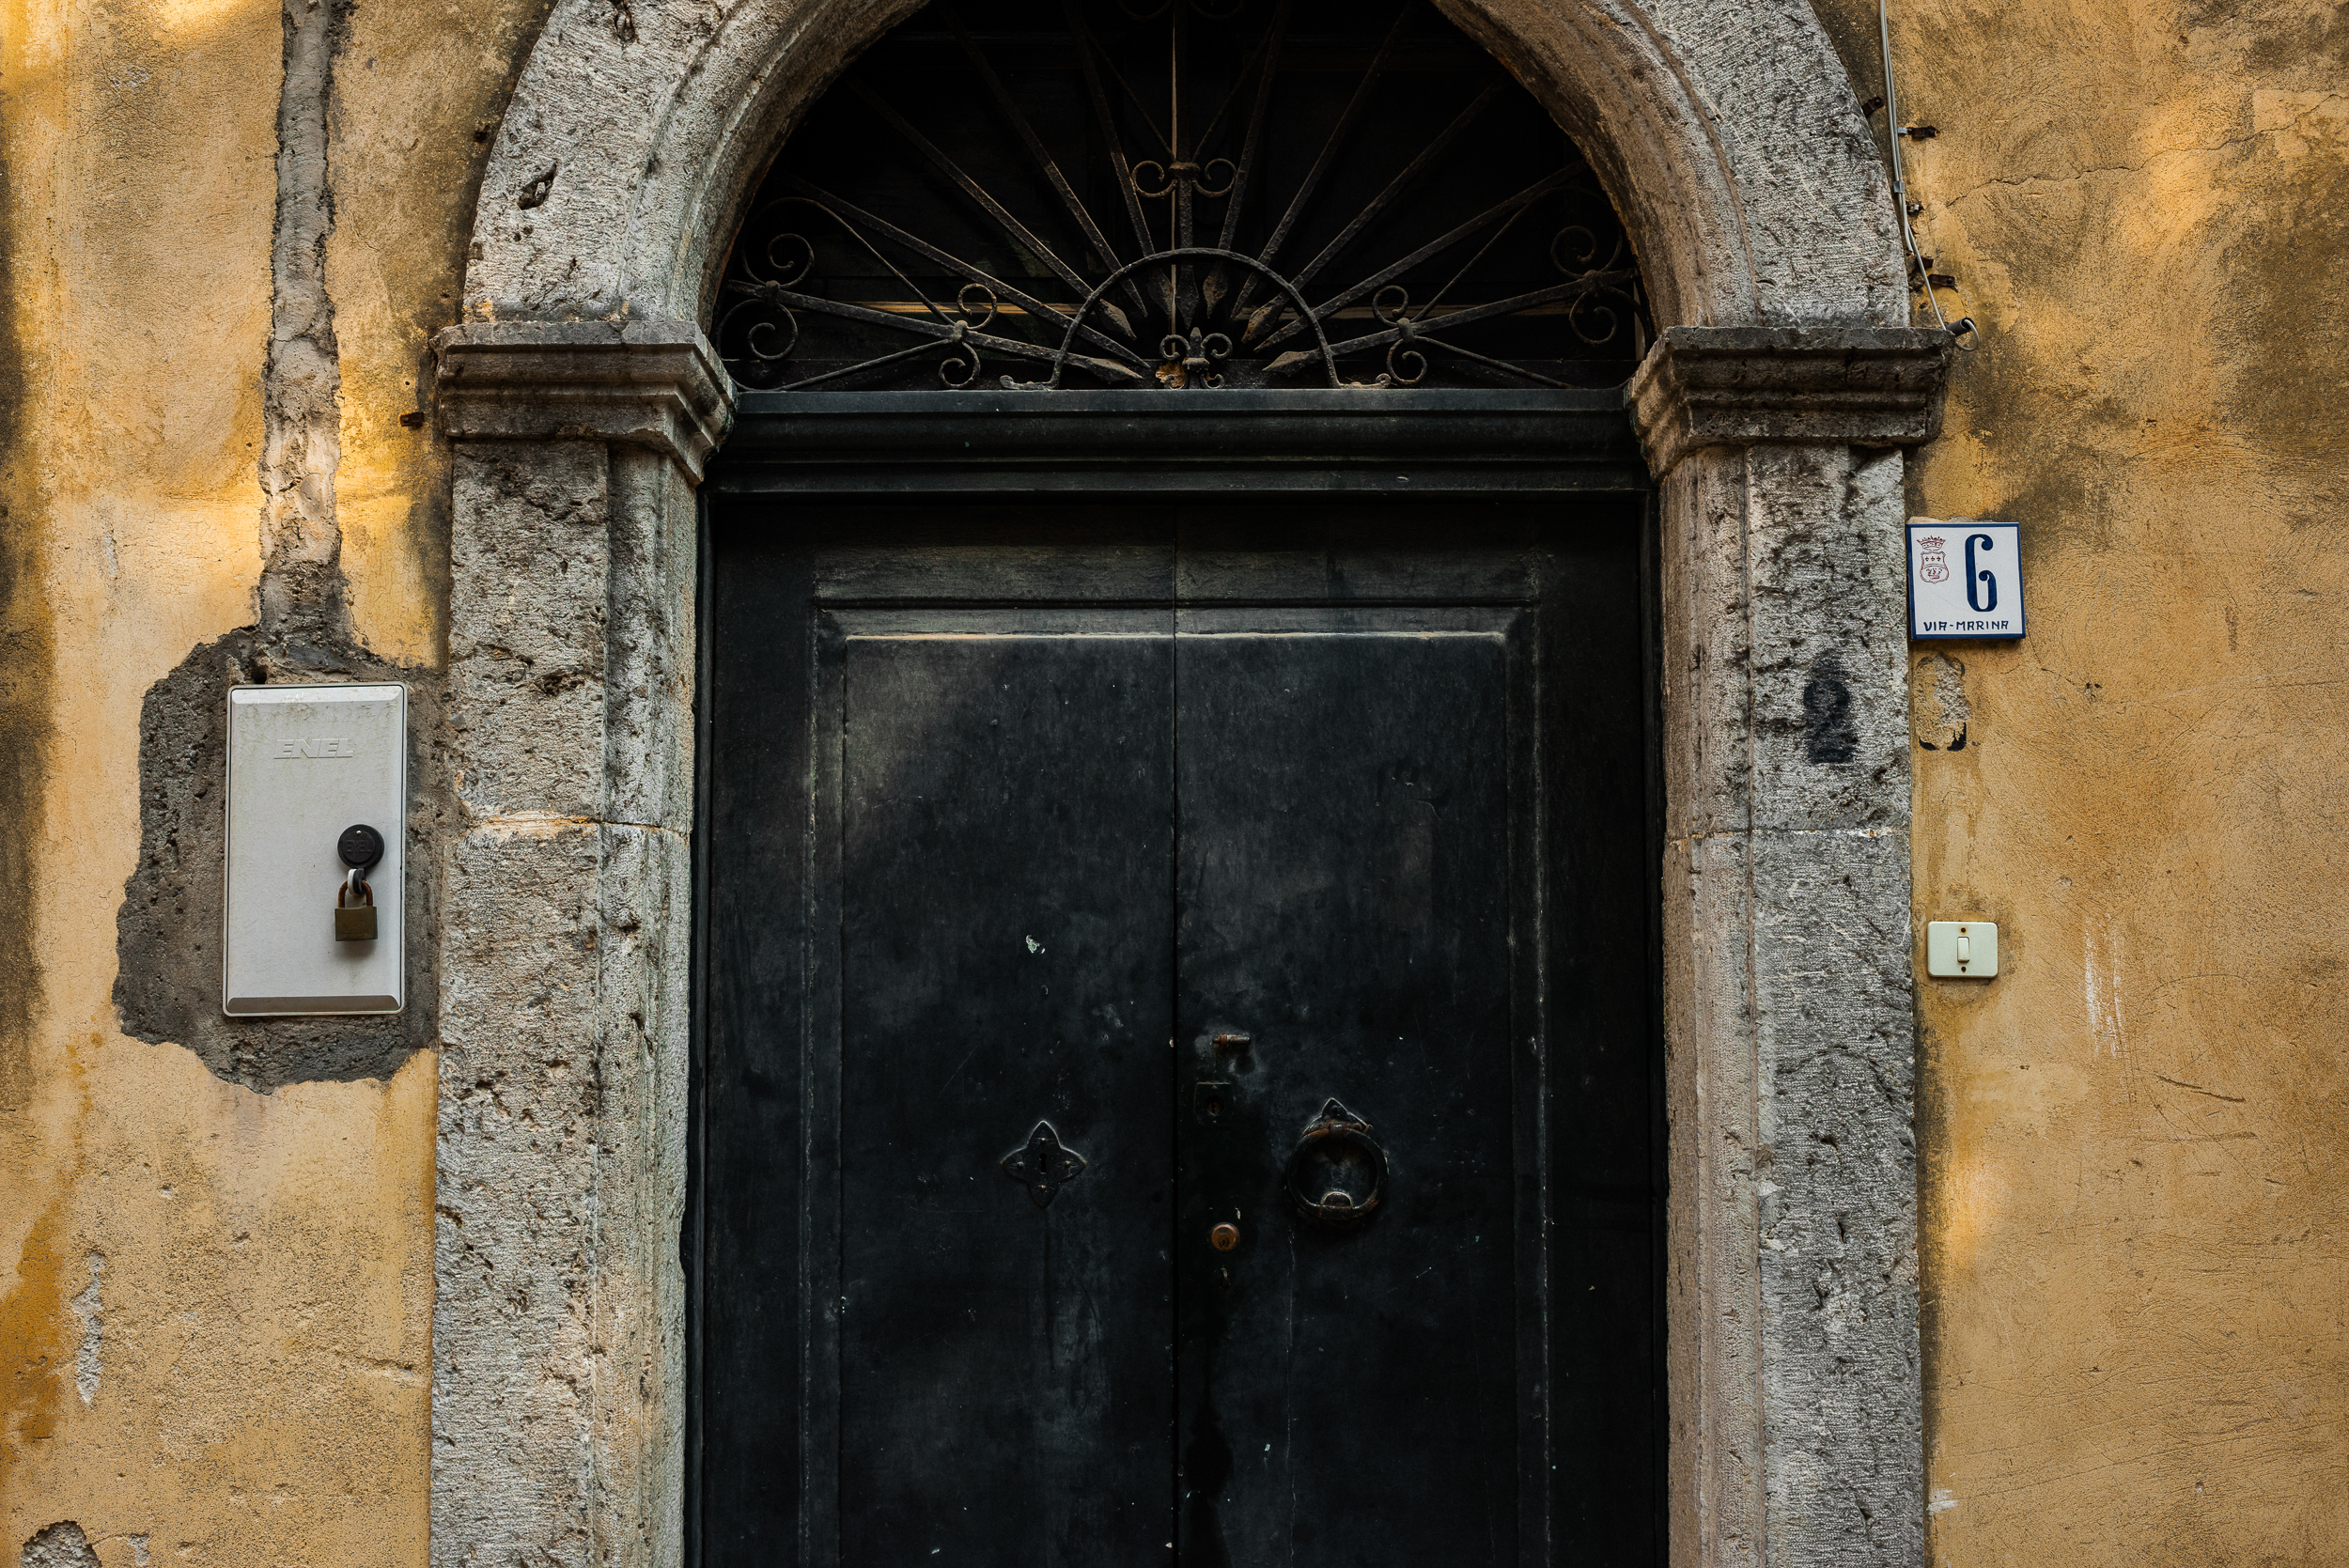 Europe_2018_ITALY_TaraShupe_Photography_DSC_4103.jpg